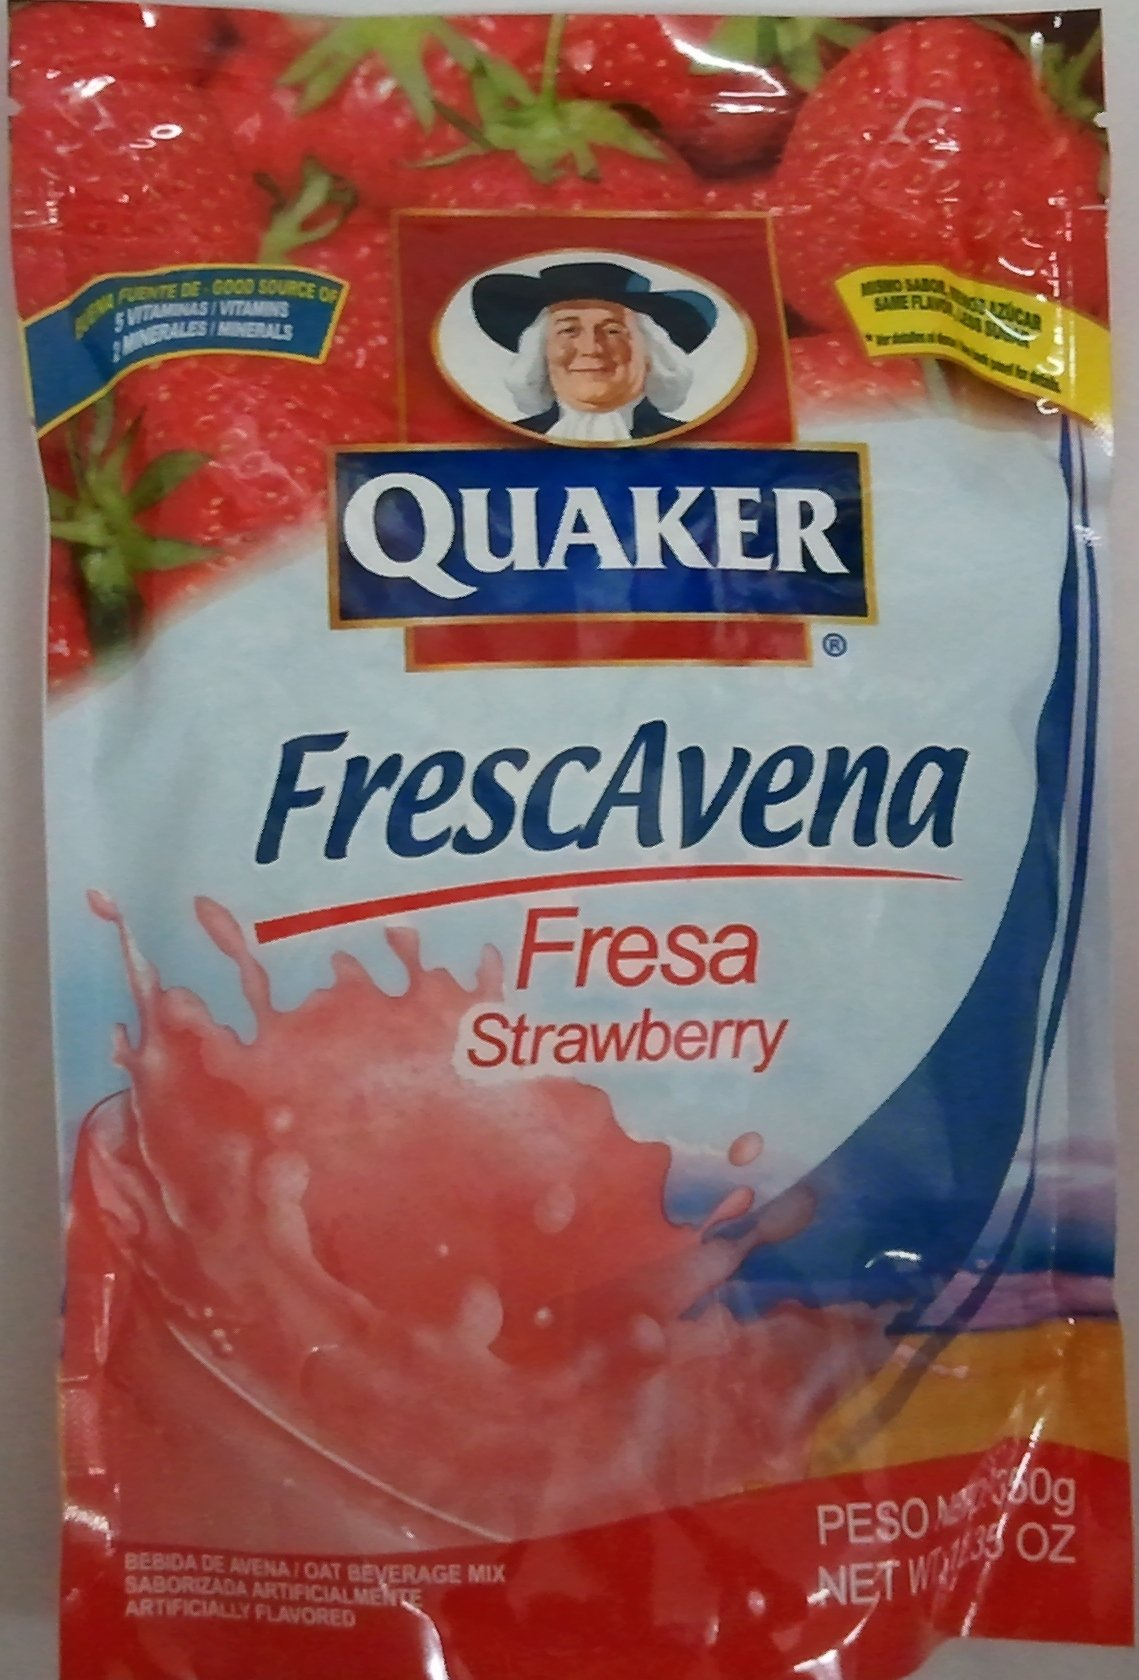 Goya Foods Frescavena Strawberry Flavor, 11.1-Ounce